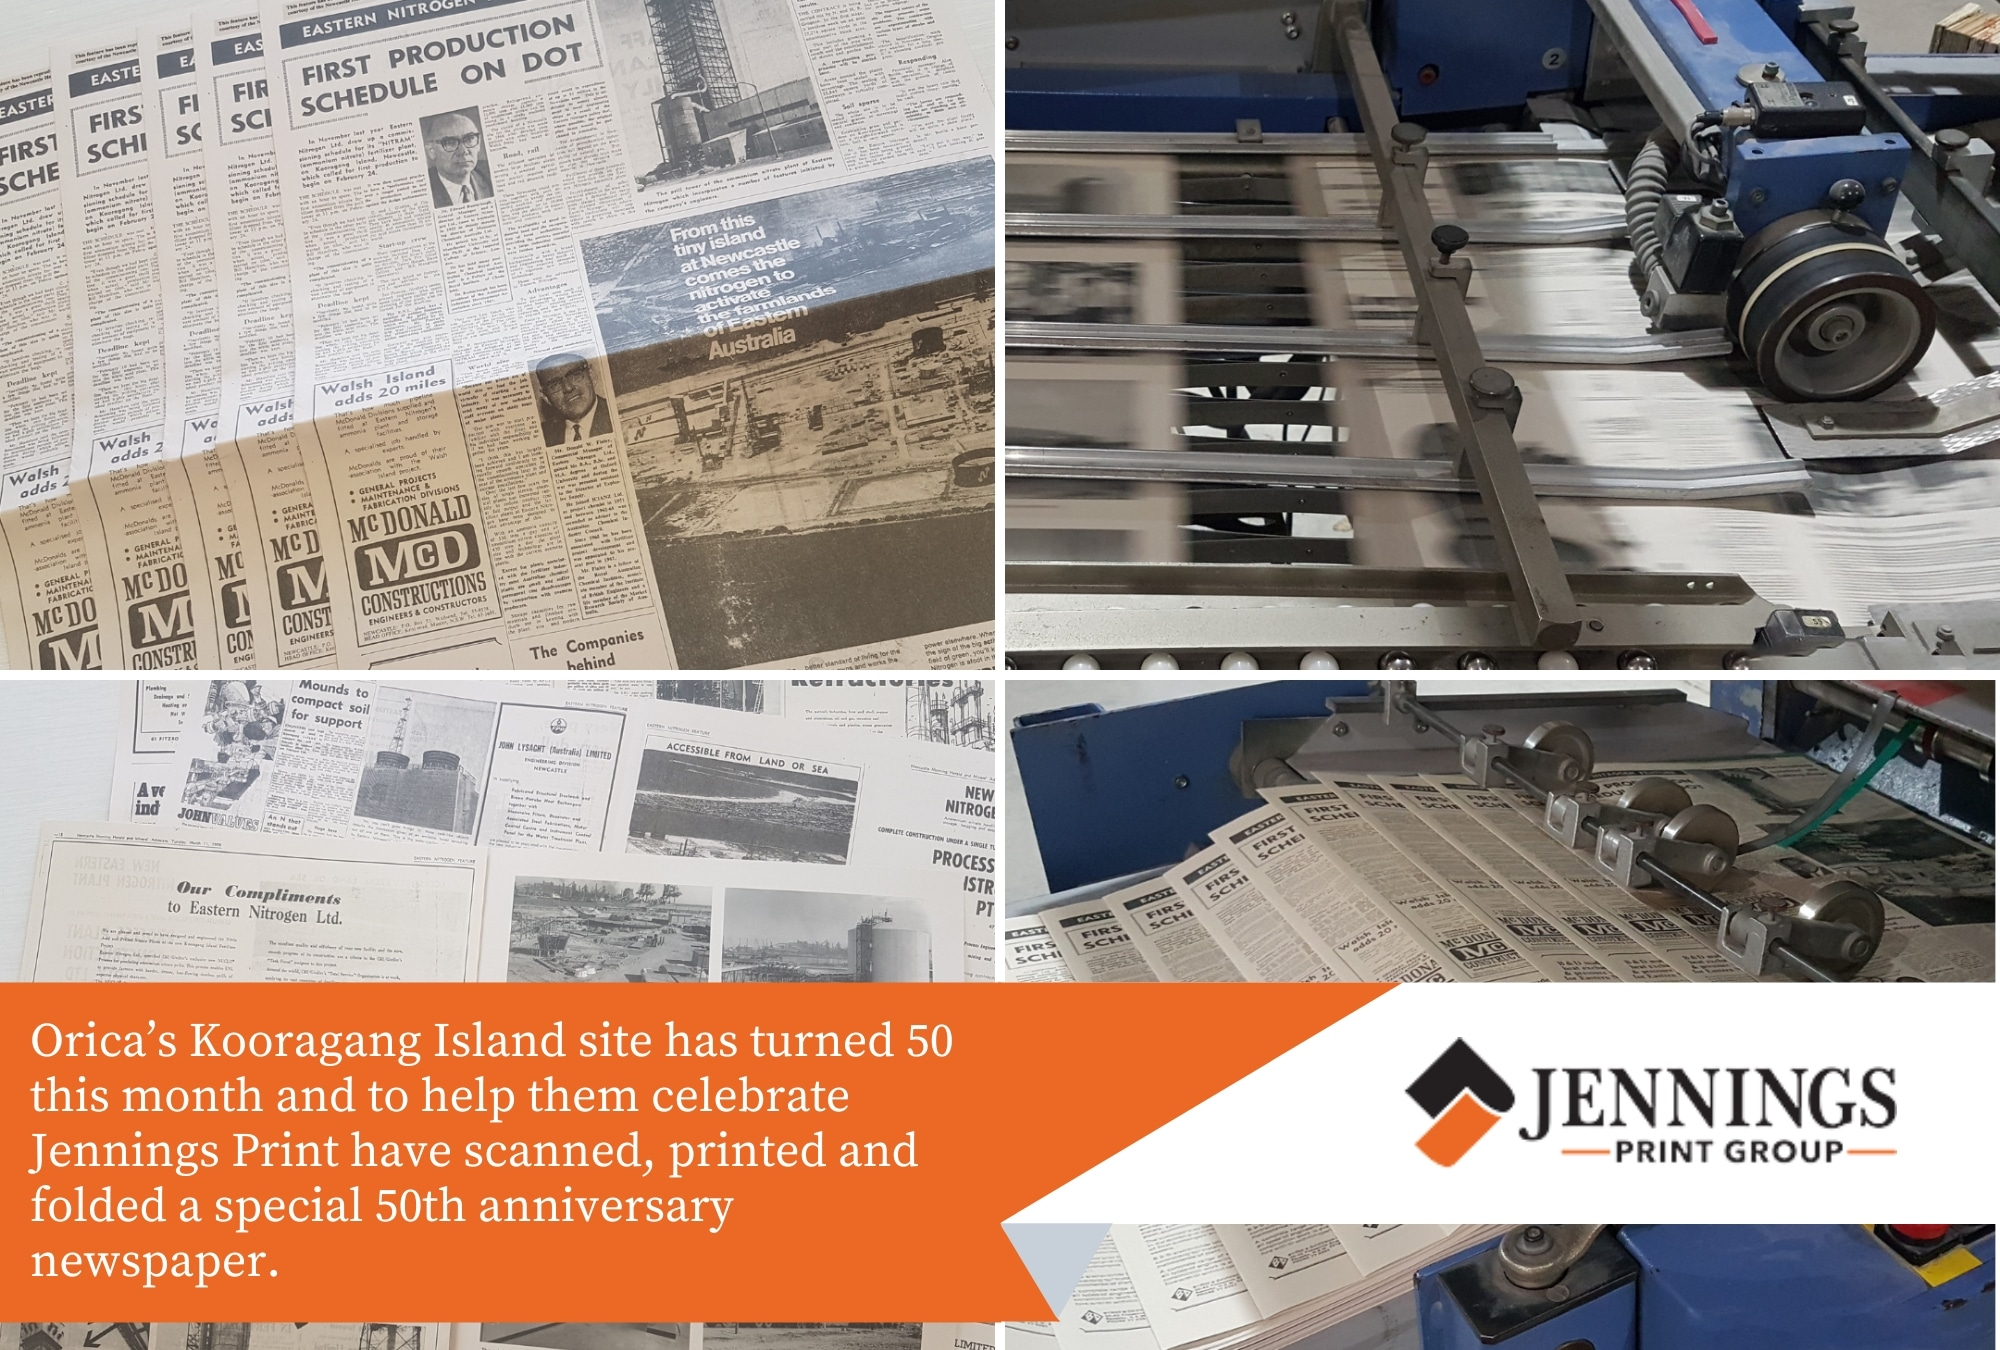 special 50th anniversary newspaper